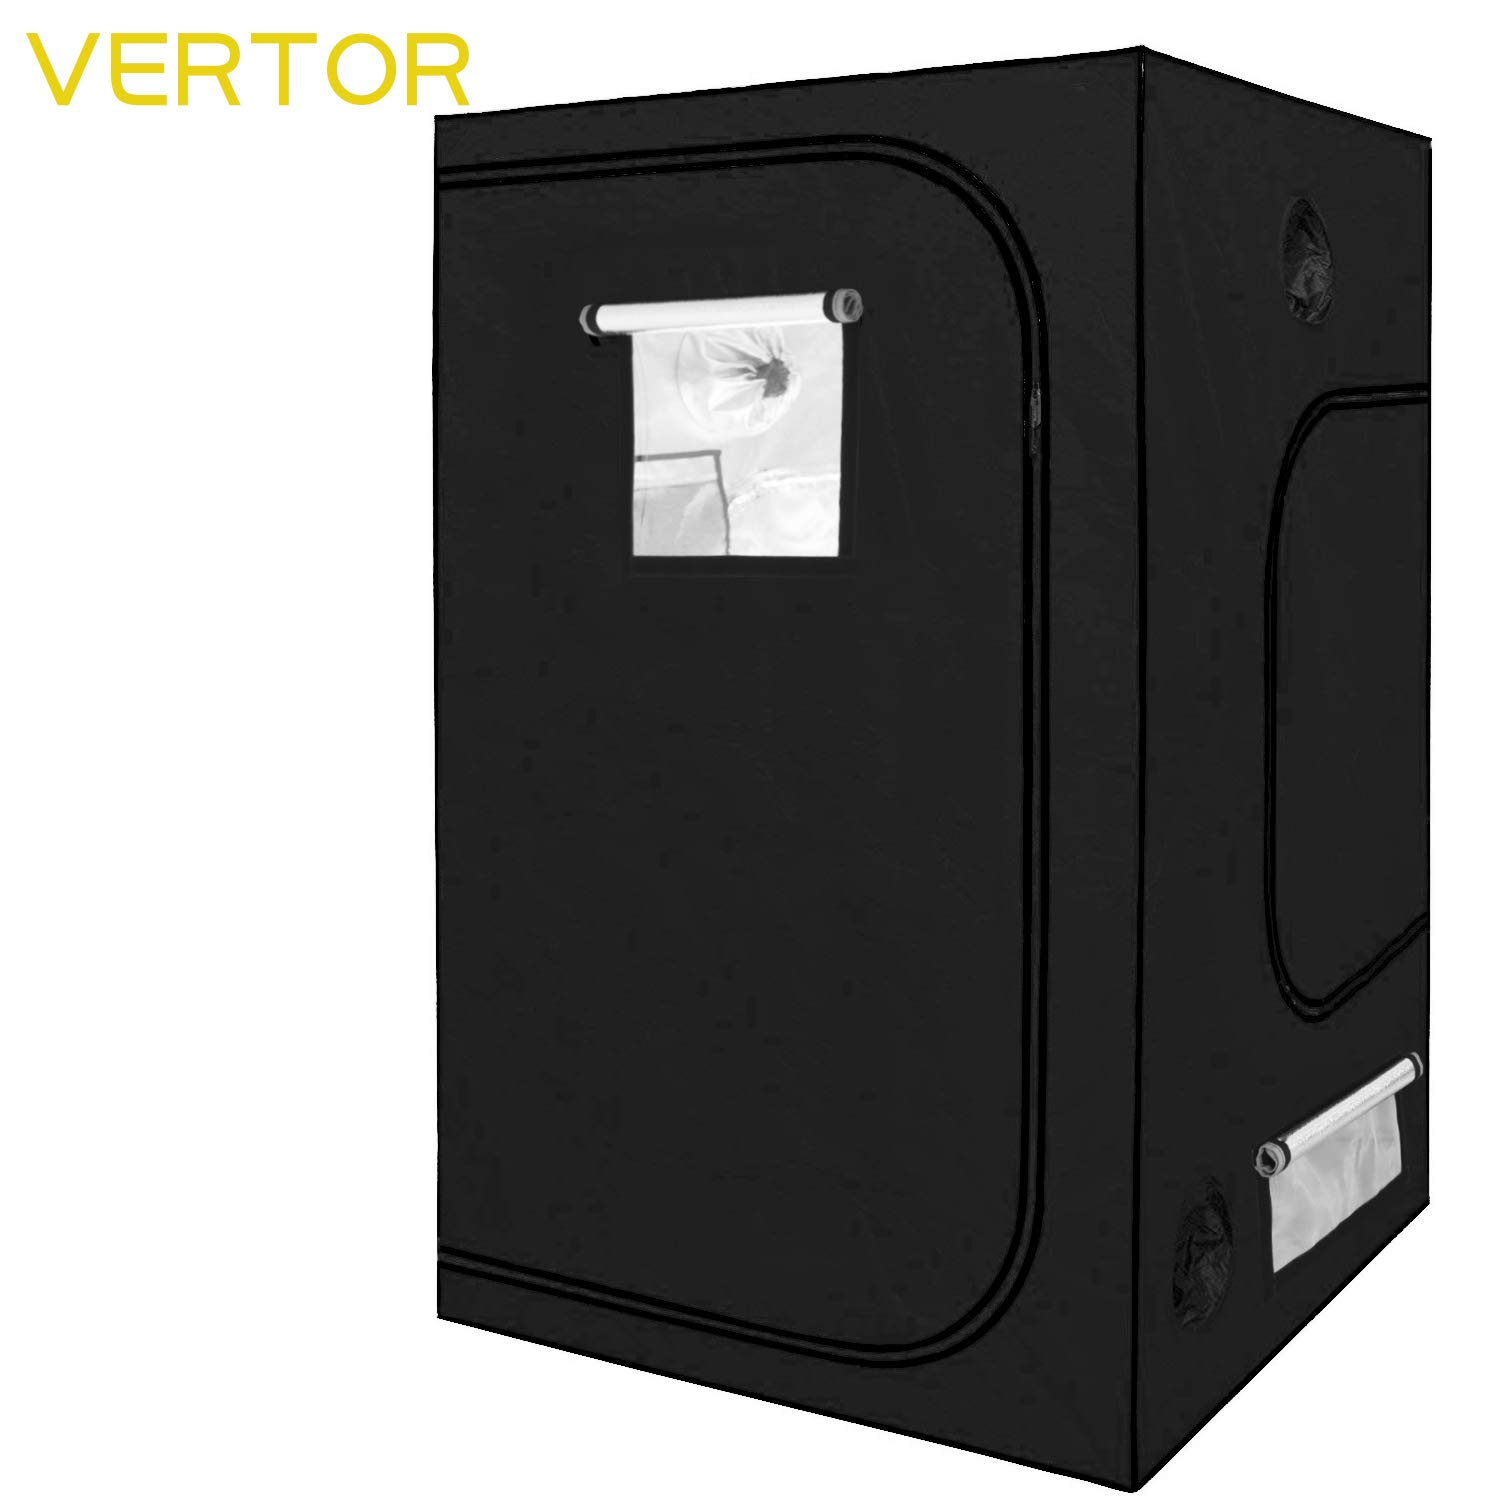 VERTOR 60 x60 x80 Reflective Mylar Hydroponic Grow Tent with Observation Window and Waterproof Floor Tray for Indoor Plant Growing 5×5 for 6 Plants